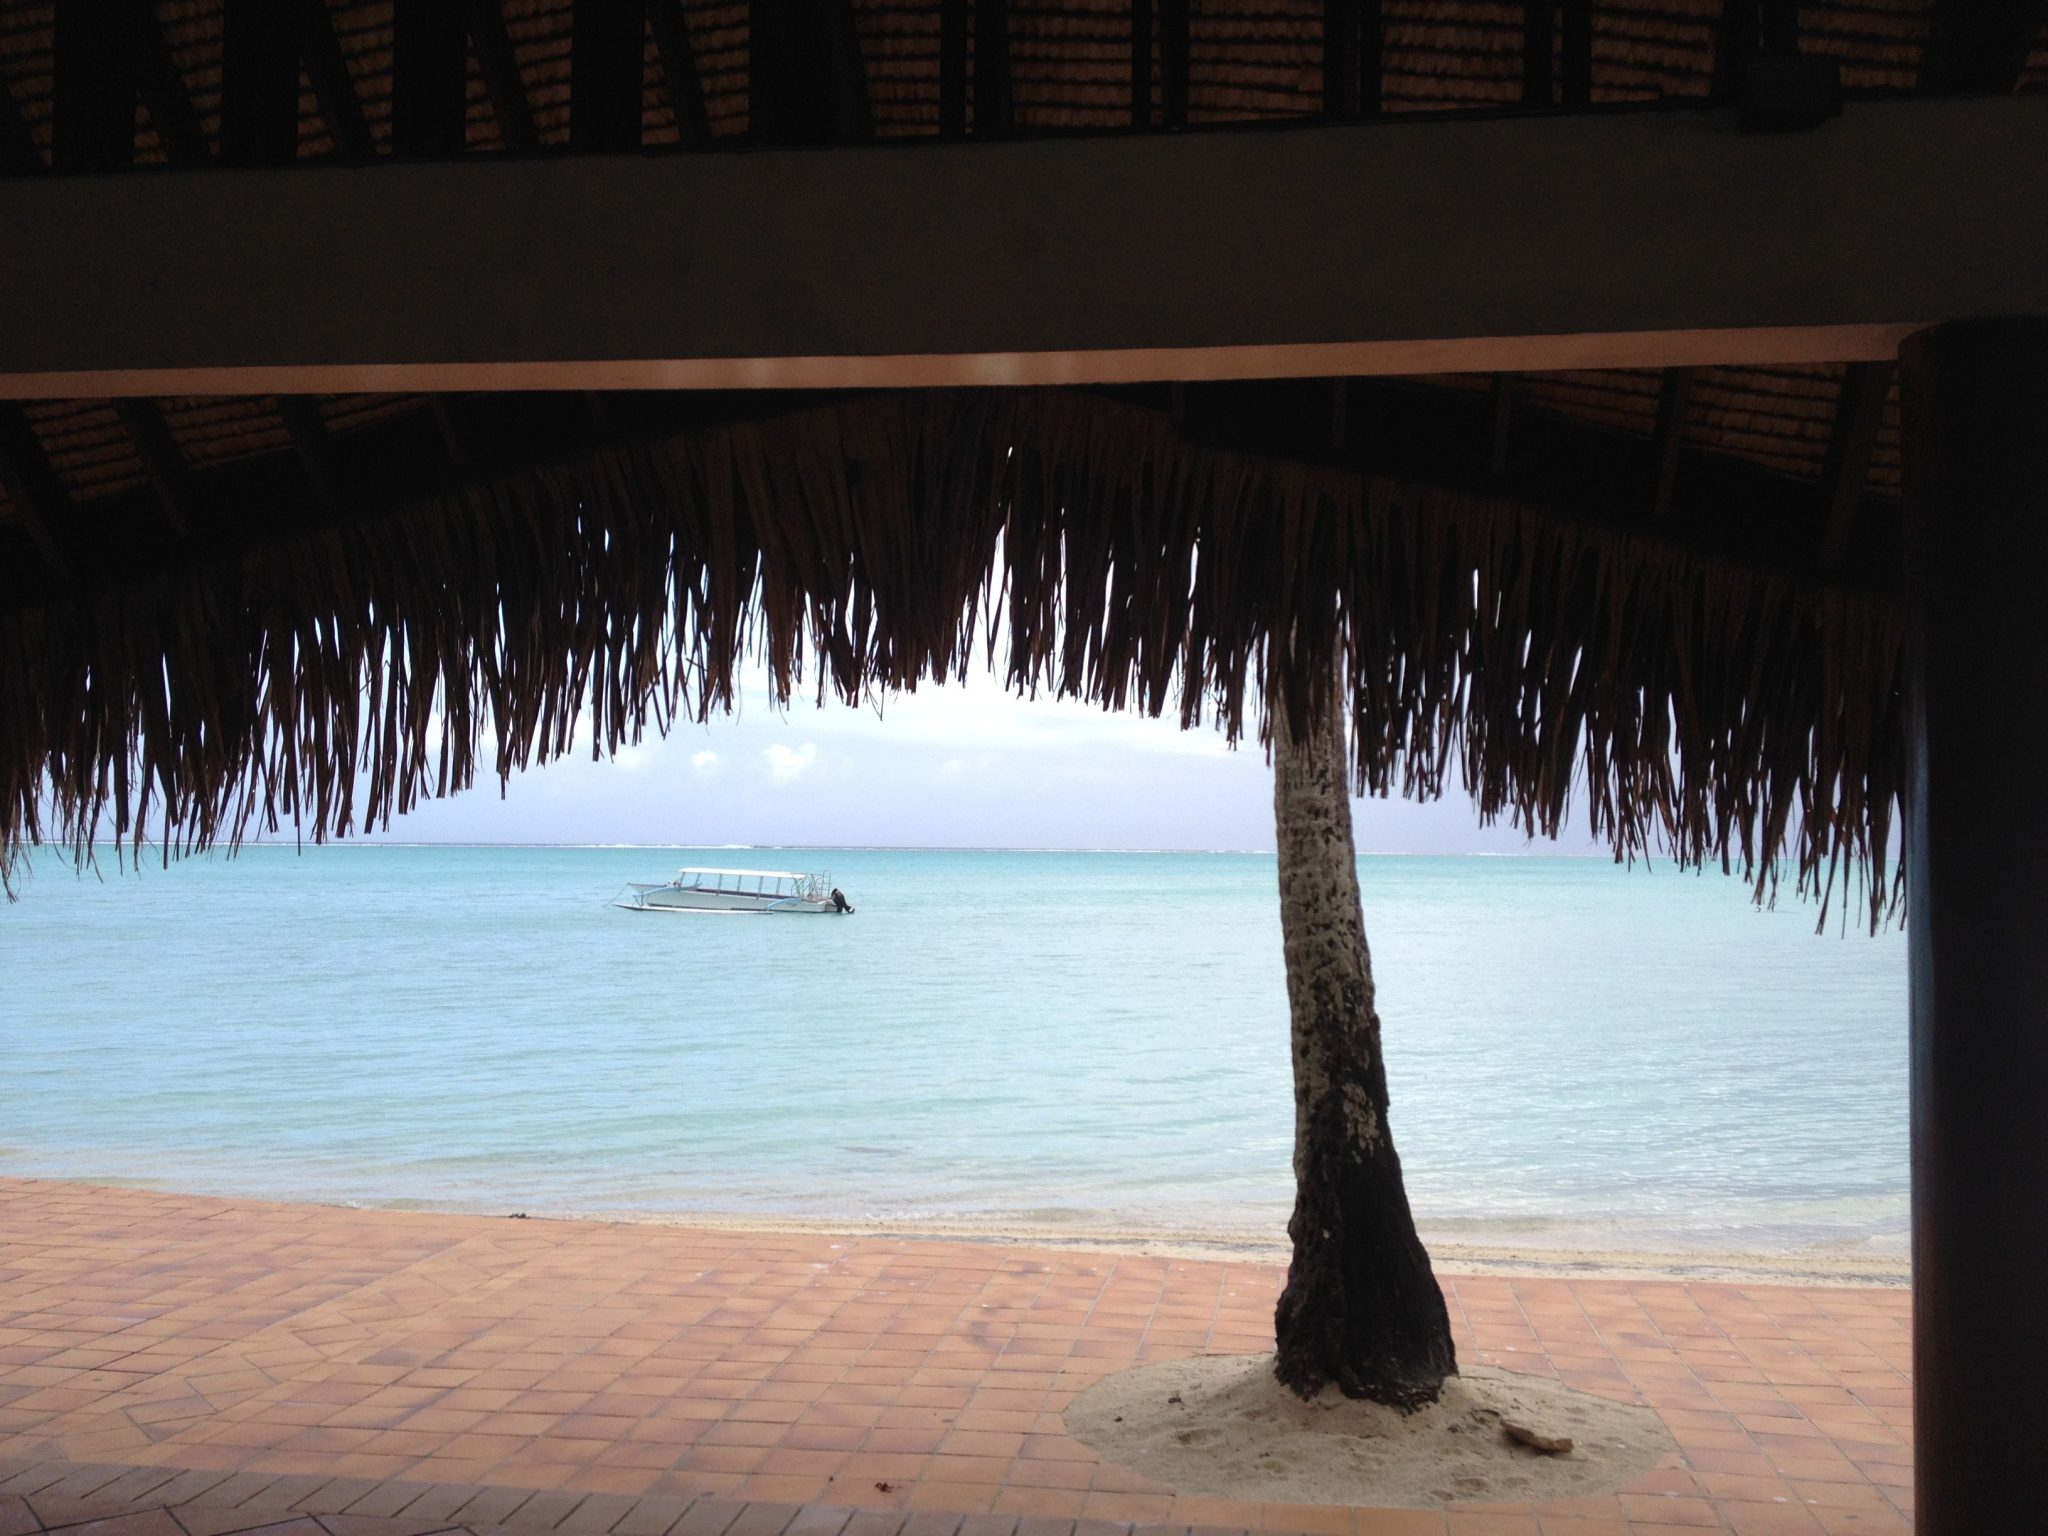 24. We walked on this serene beach on the northern part of Bora Bora's lagoon.  The roof was made of pandanus leaves from a nearby island